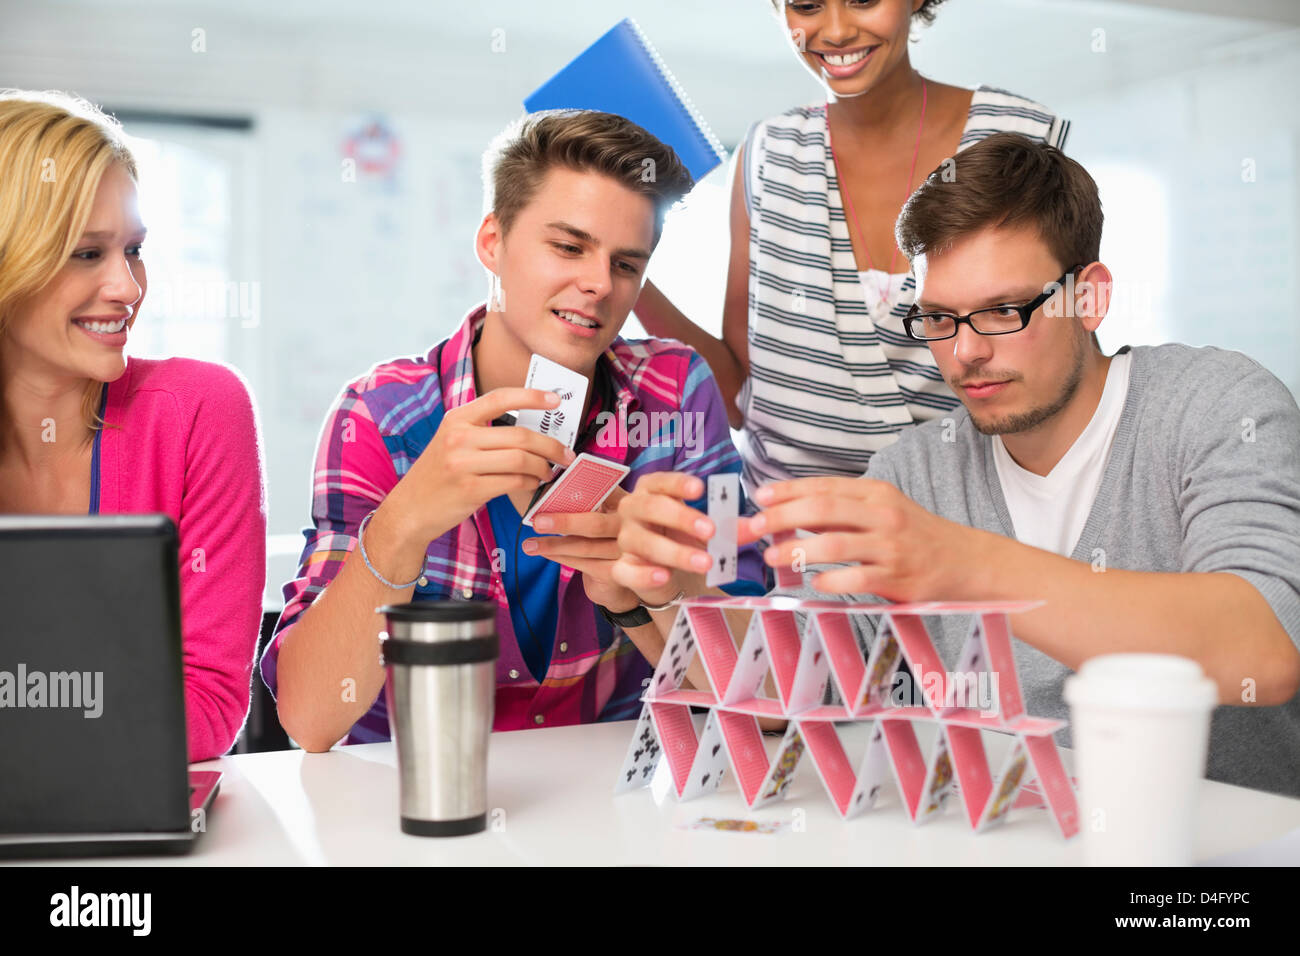 Business people making house of cards in office - Stock Image